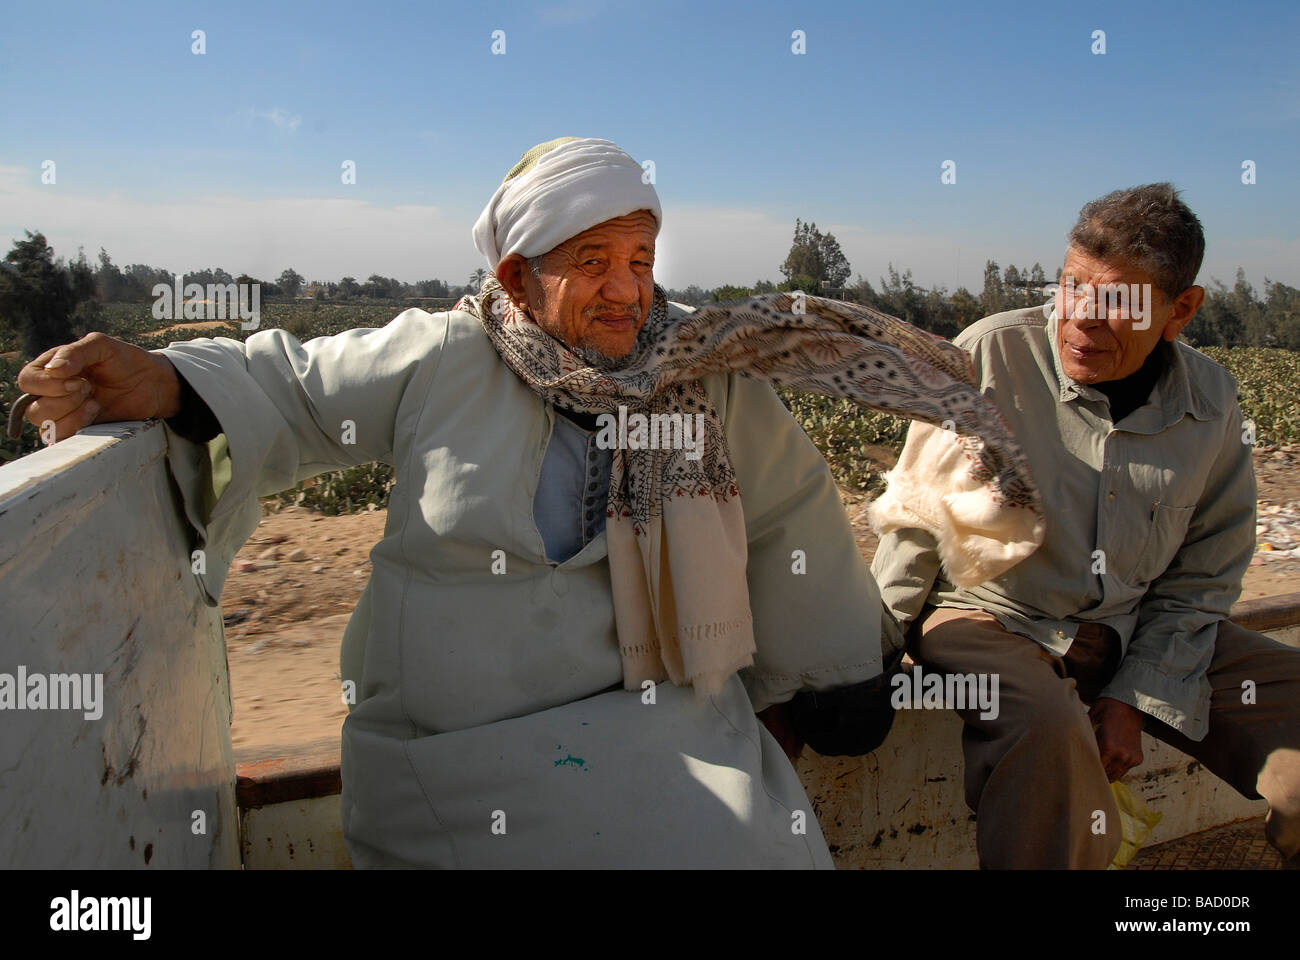 Ex leprosy patients are riding a pick up between the leprosy hospital in the ex-lepers village in Egypt. - Stock Image